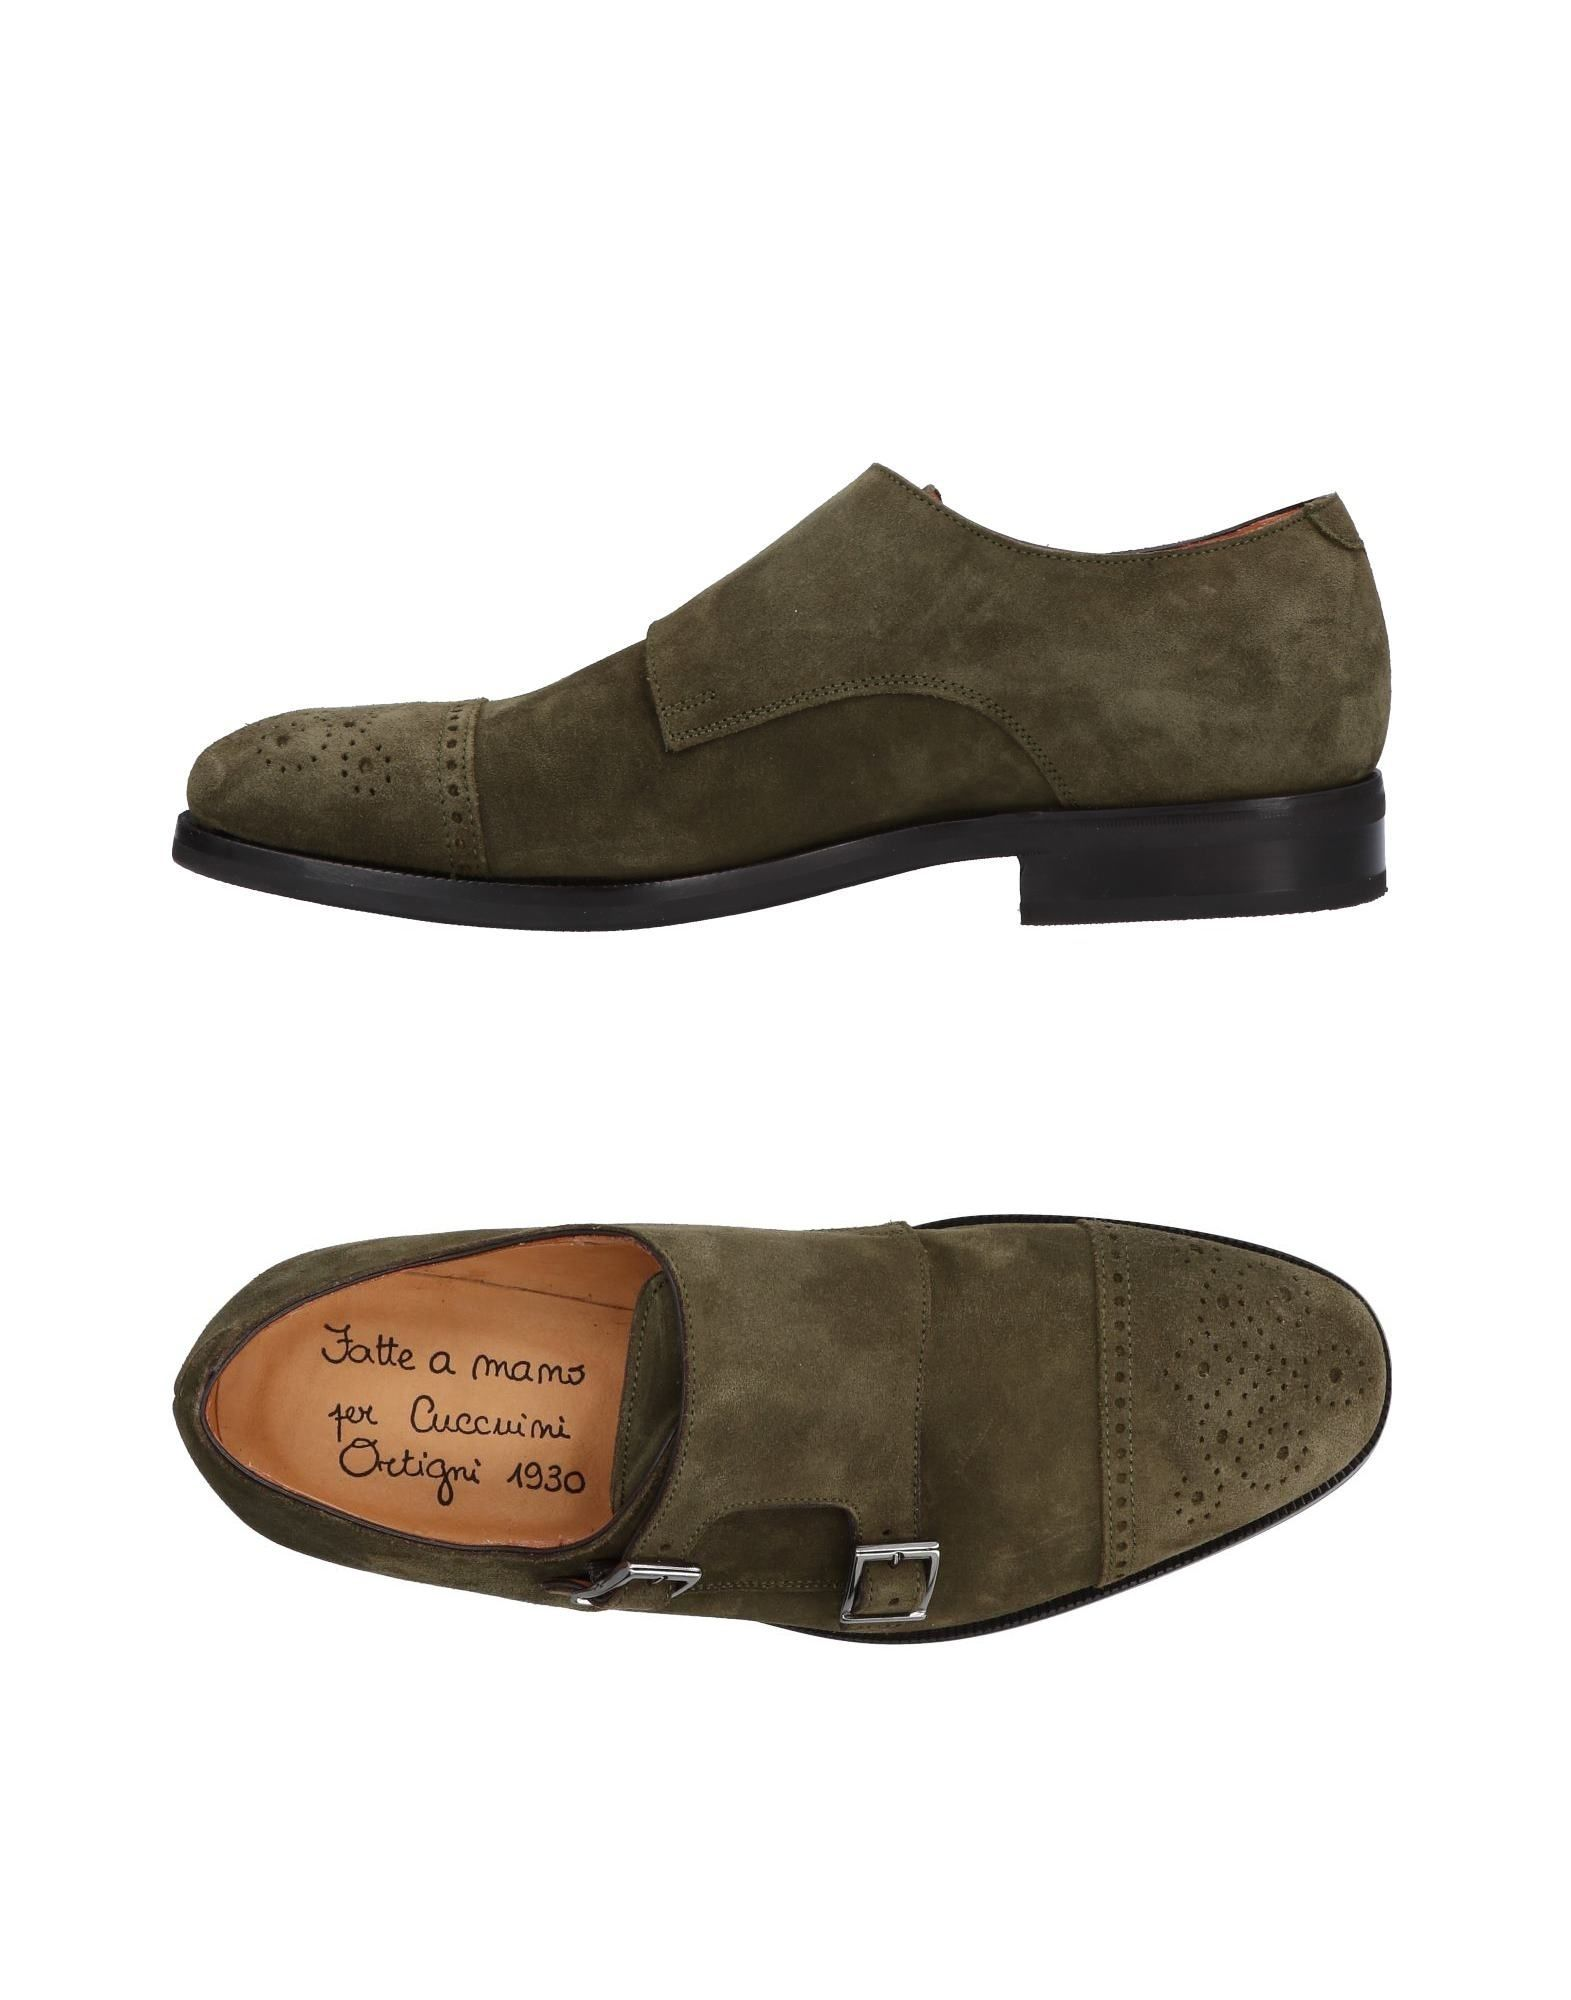 ORTIGNI Loafers in Military Green